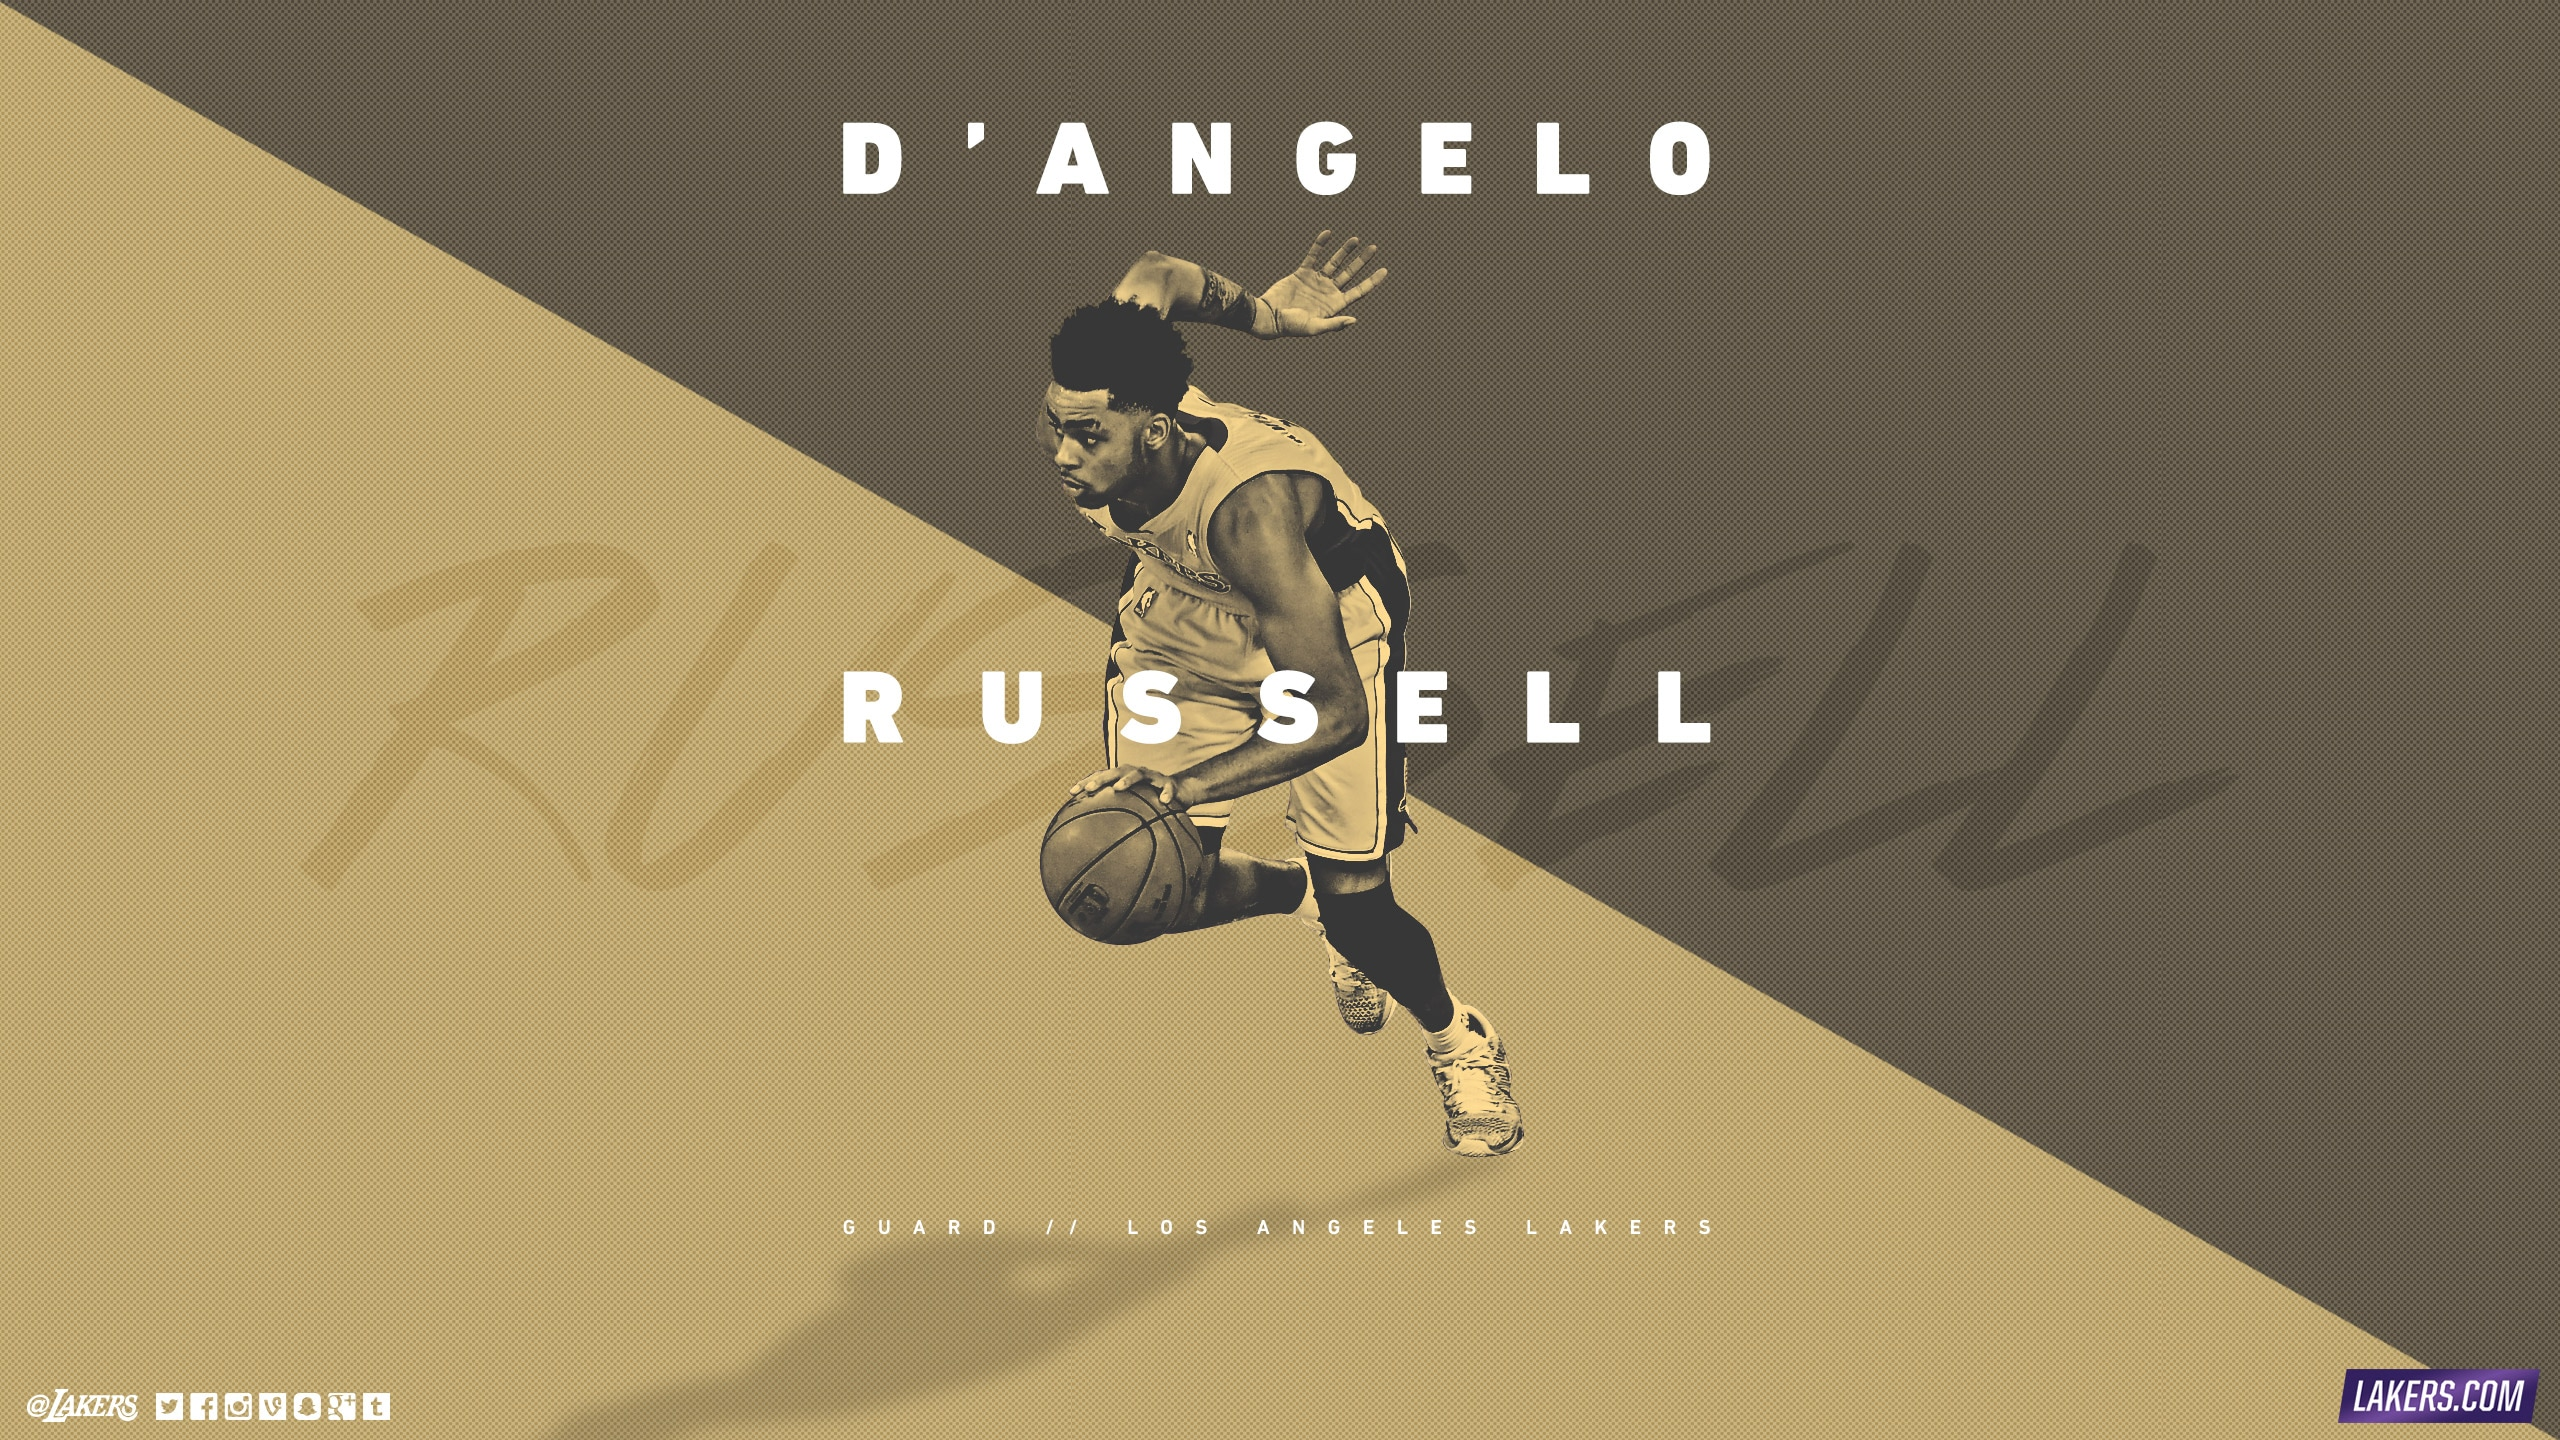 D'Angelo Russell Player Wallpaper